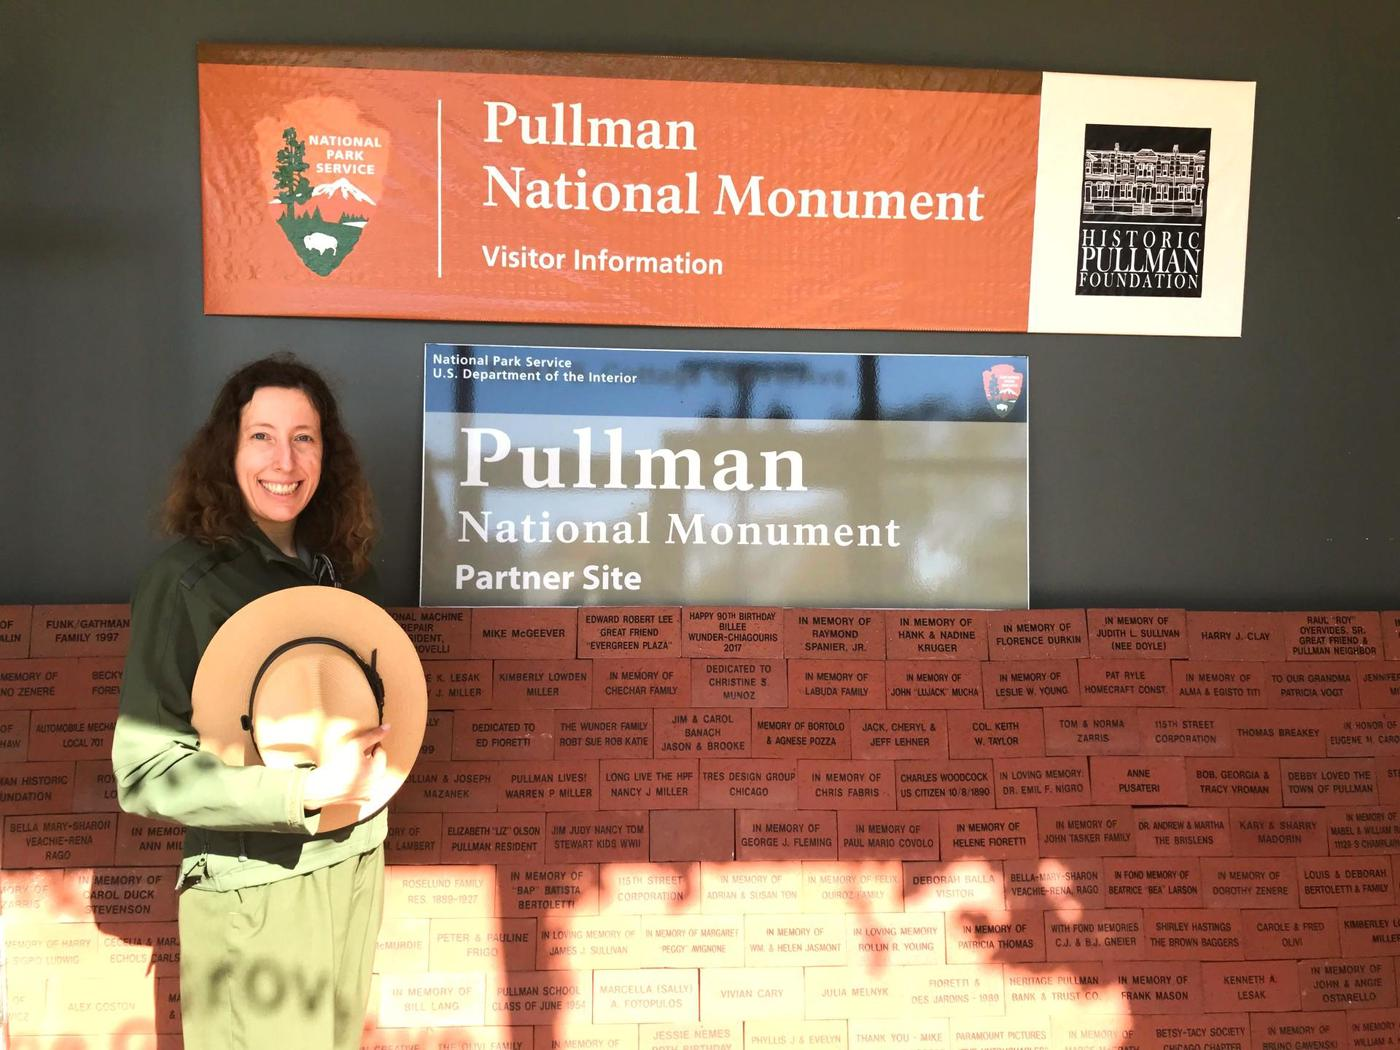 Park Ranger at Pullman National MonumentFriendly park rangers will welcome you to Pullman National Monument. This photo shows the entryway of the visitor center.